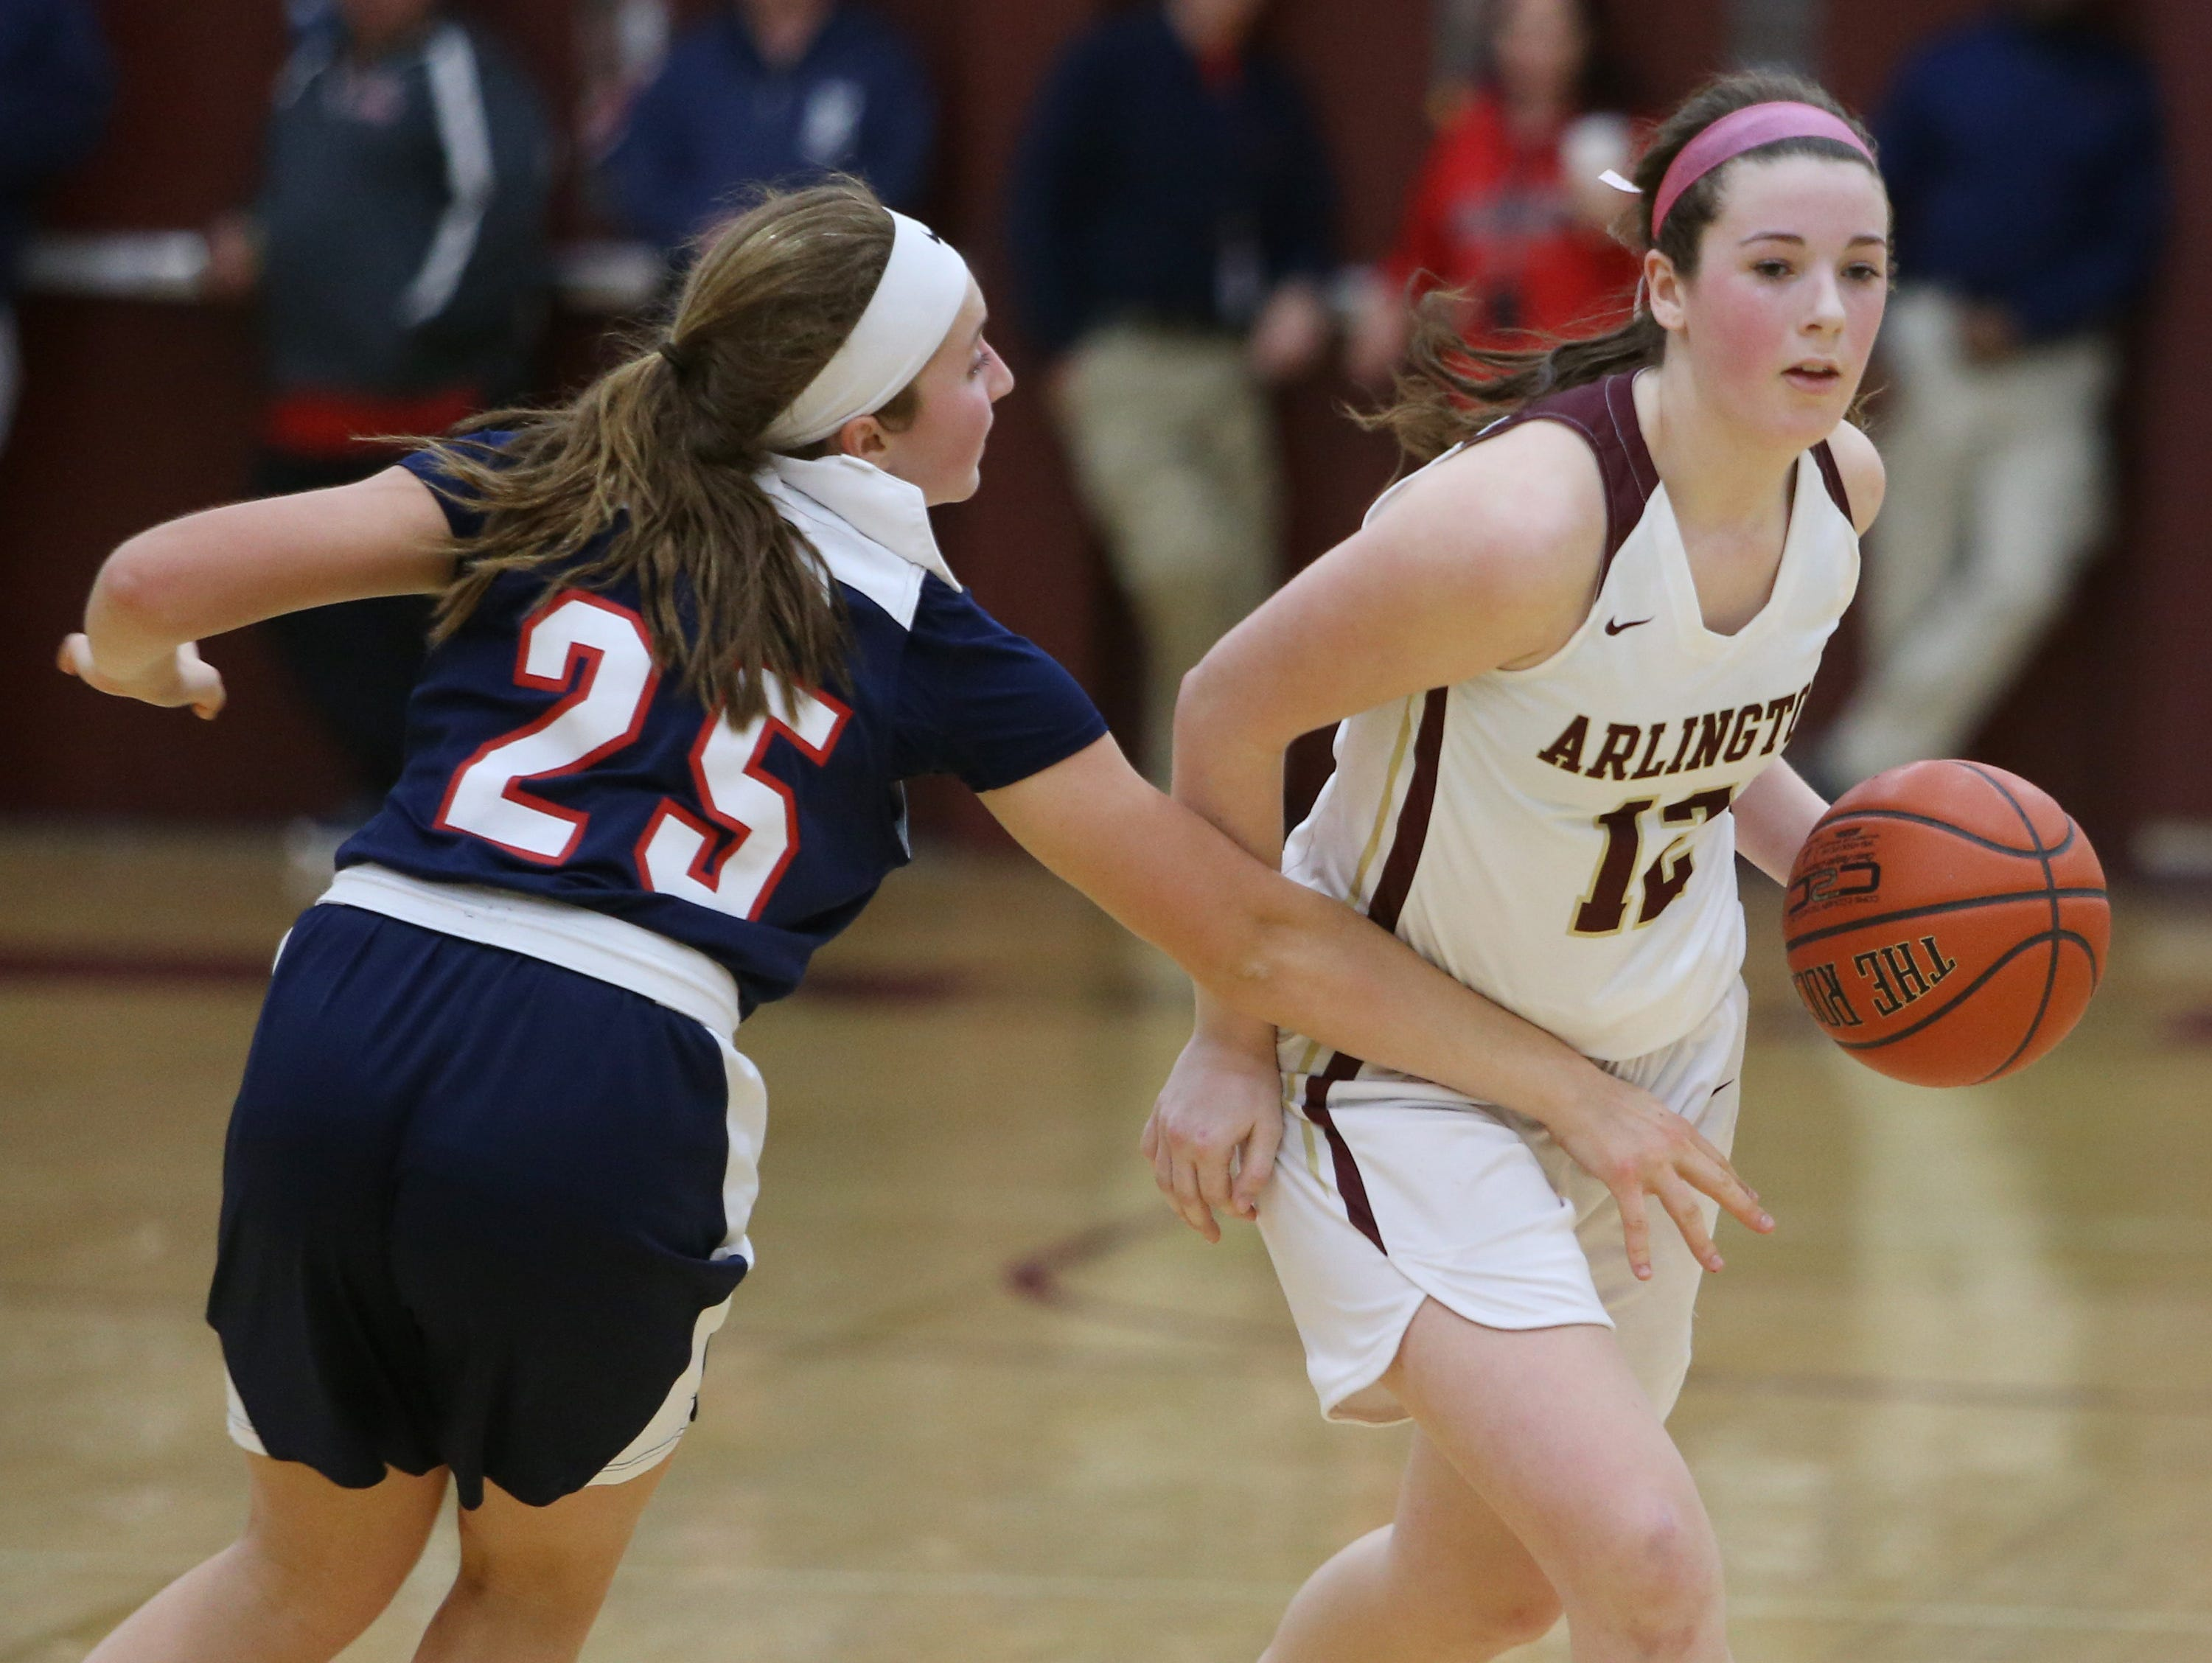 Arlington's Molly Stephens evades Ketcham's Abby Mealy during Wednesday's game in Freedom Plains on February 6, 2019.